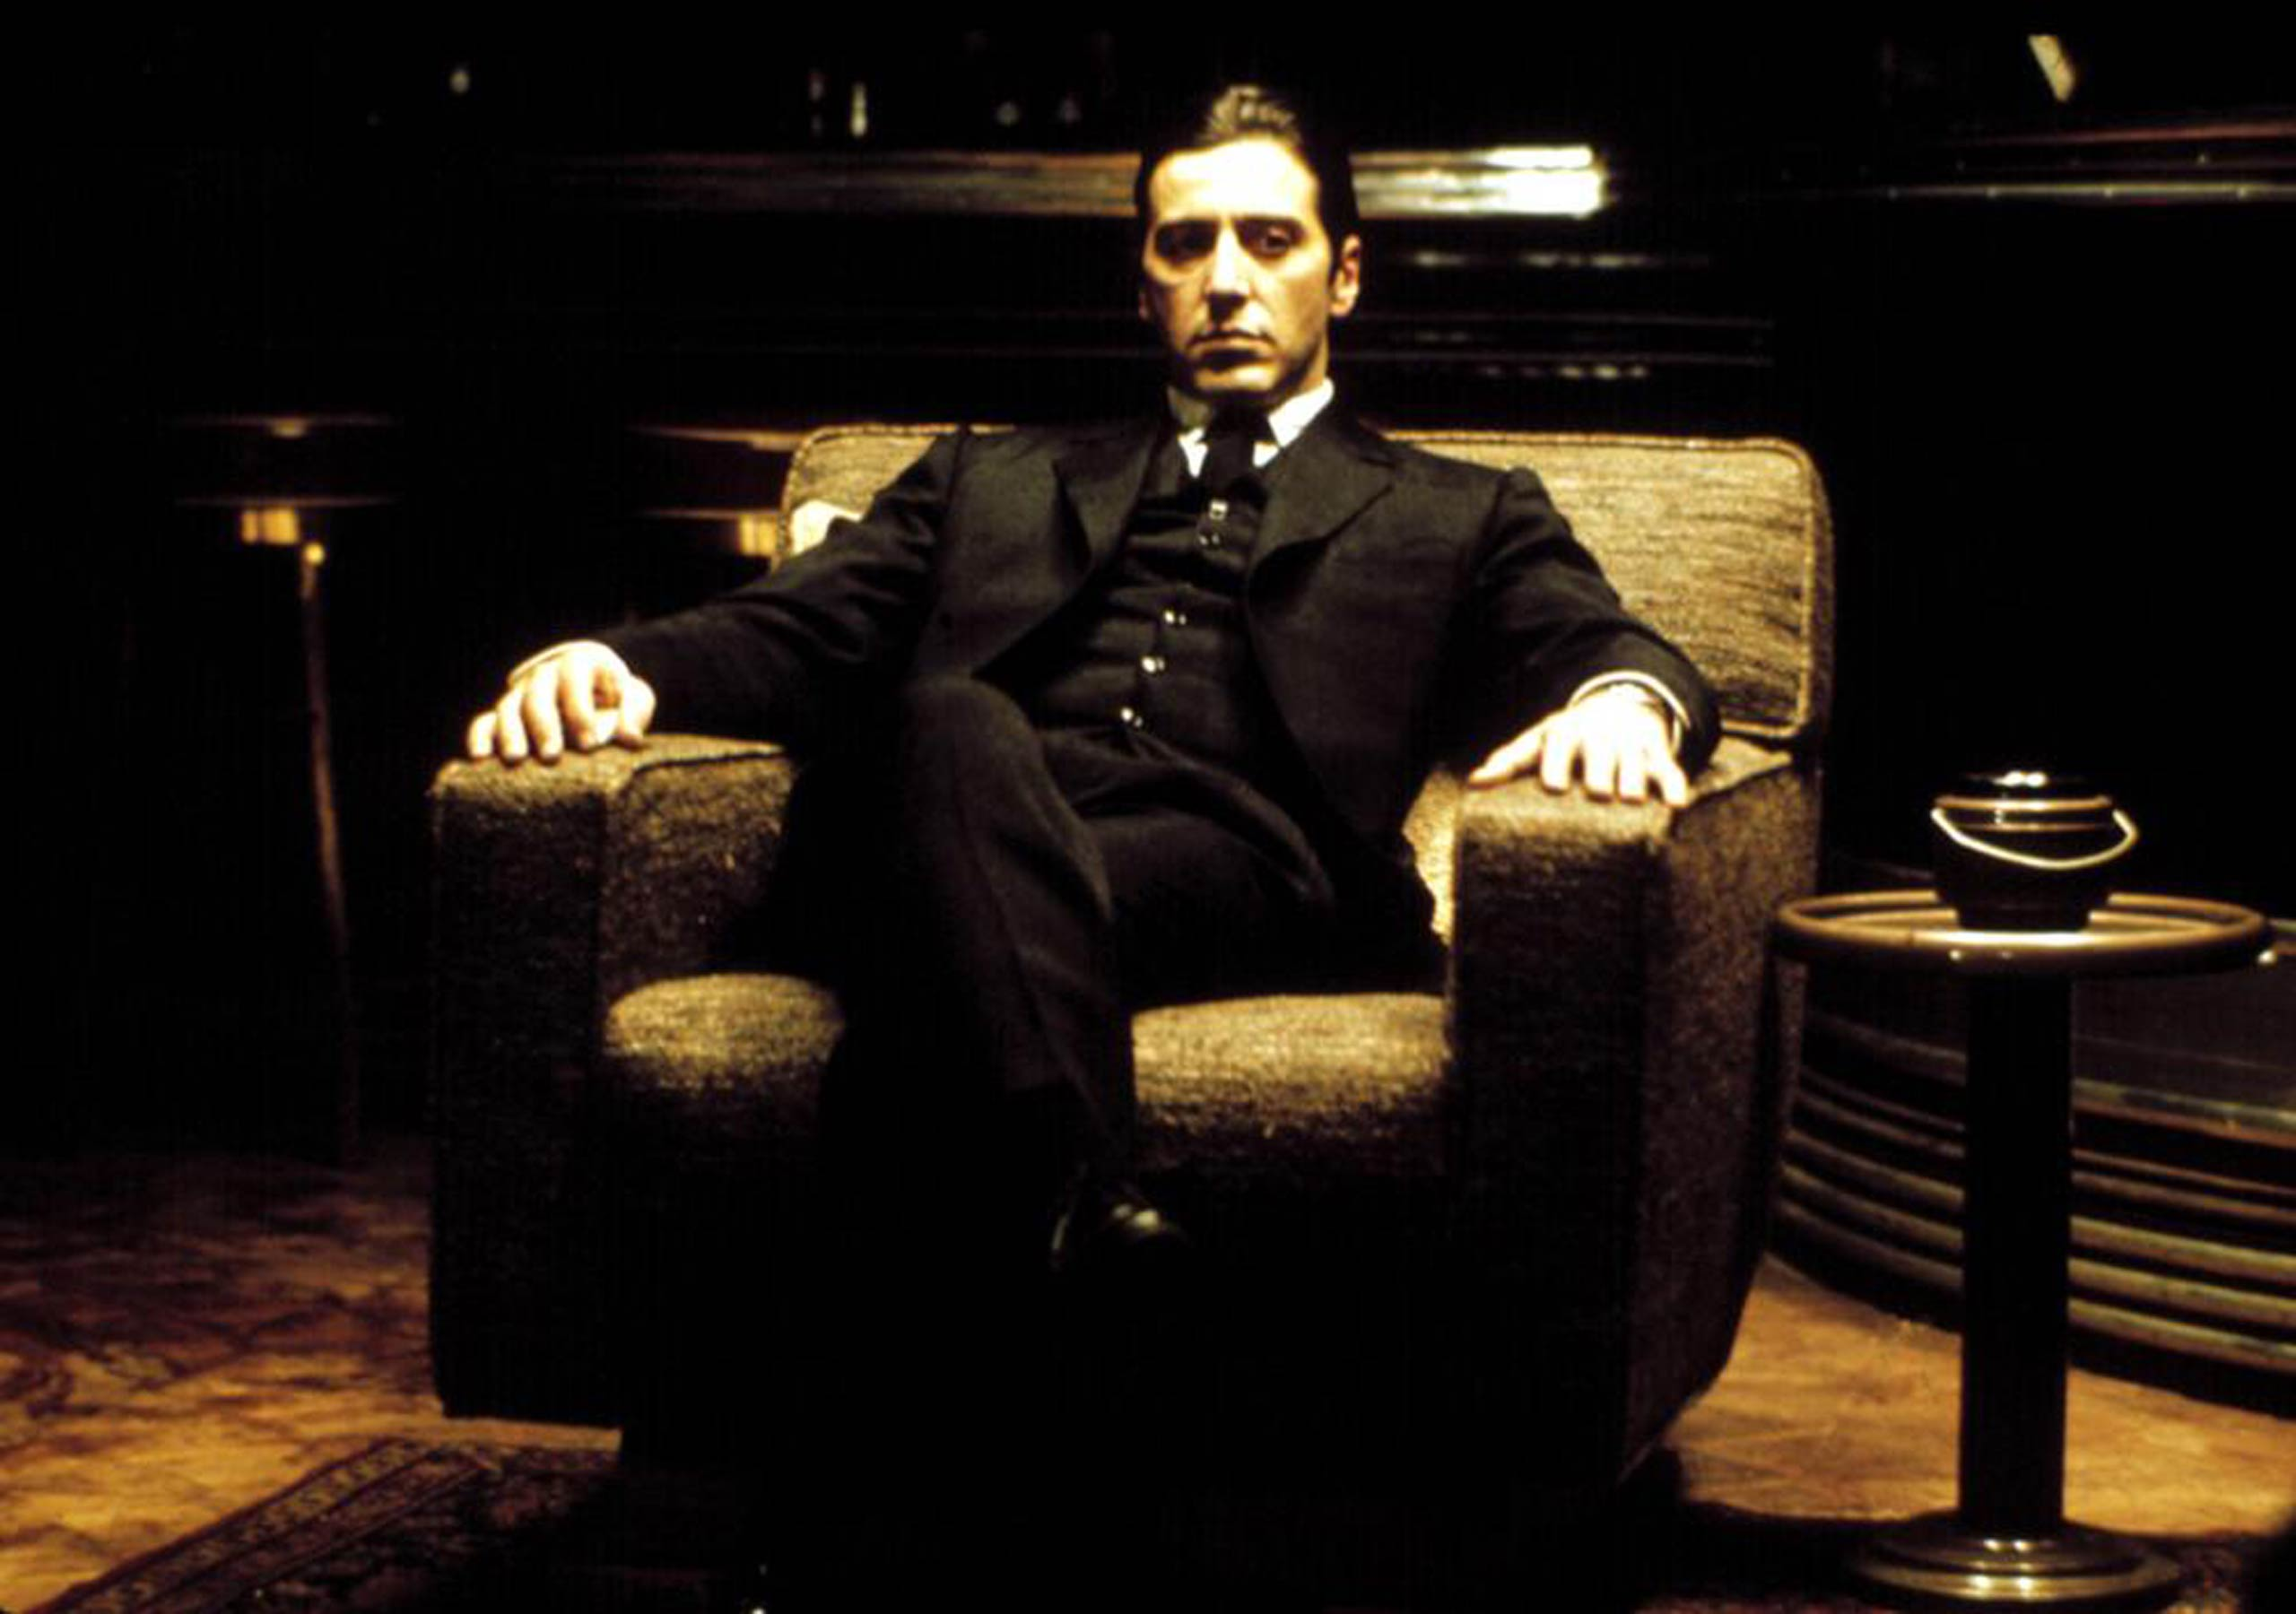 <strong><i>The Godfather: Part II</i></strong> <i>The Godfather Part II</i> starred Al Pacino as mobster Michael Corleone and Robert De Niro as his father, Vito, in the 1974 Oscar-winning sequel to <i>The Godfather<i>.